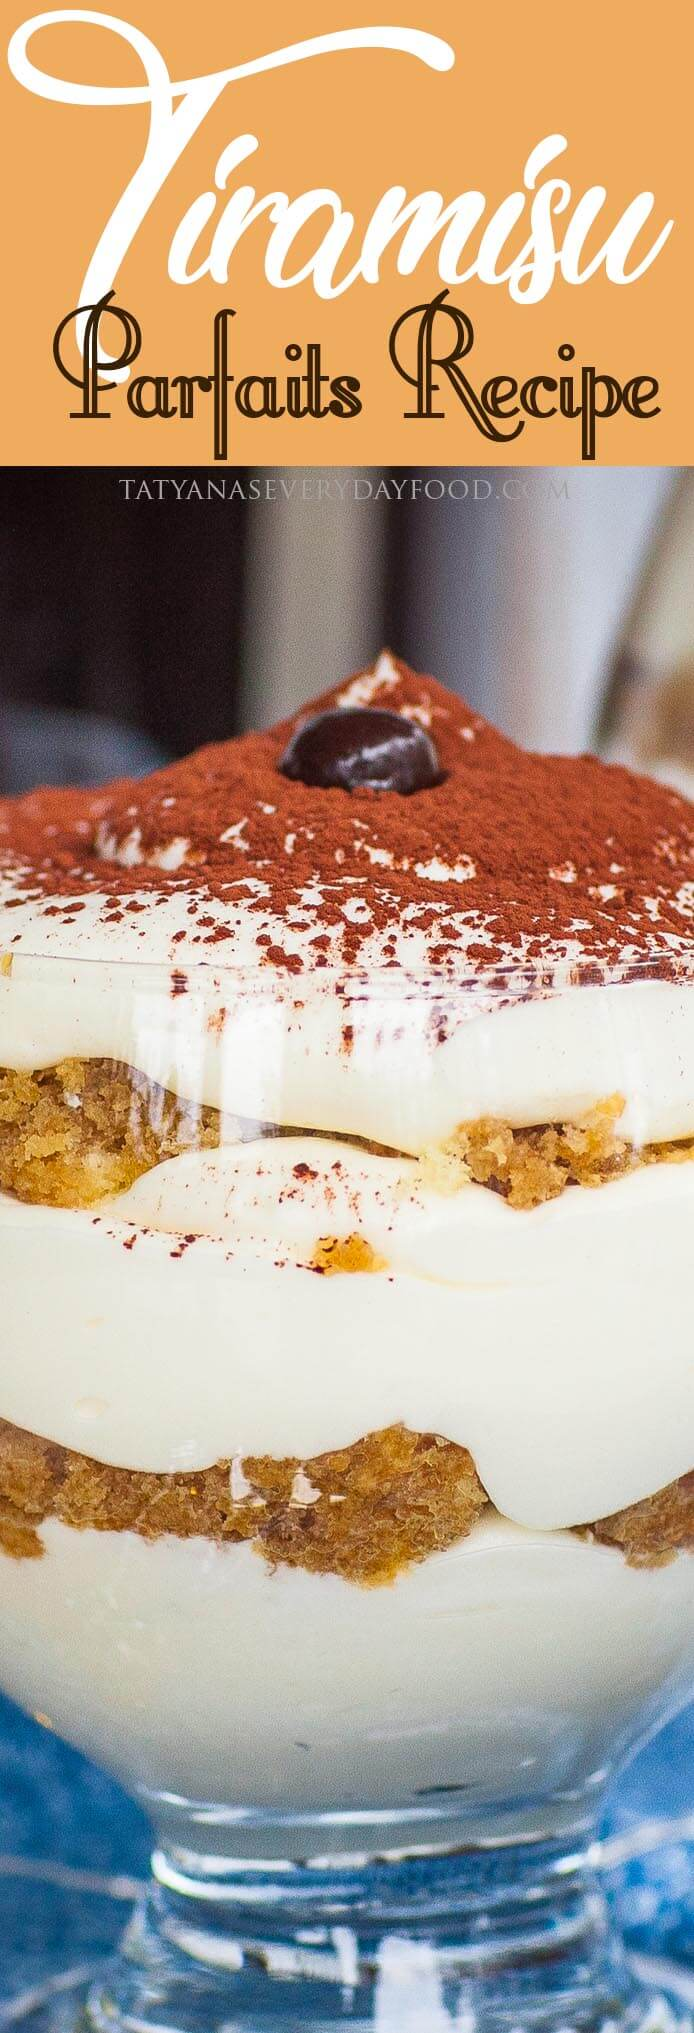 Easy Tiramisu Parfaits Recipe with video